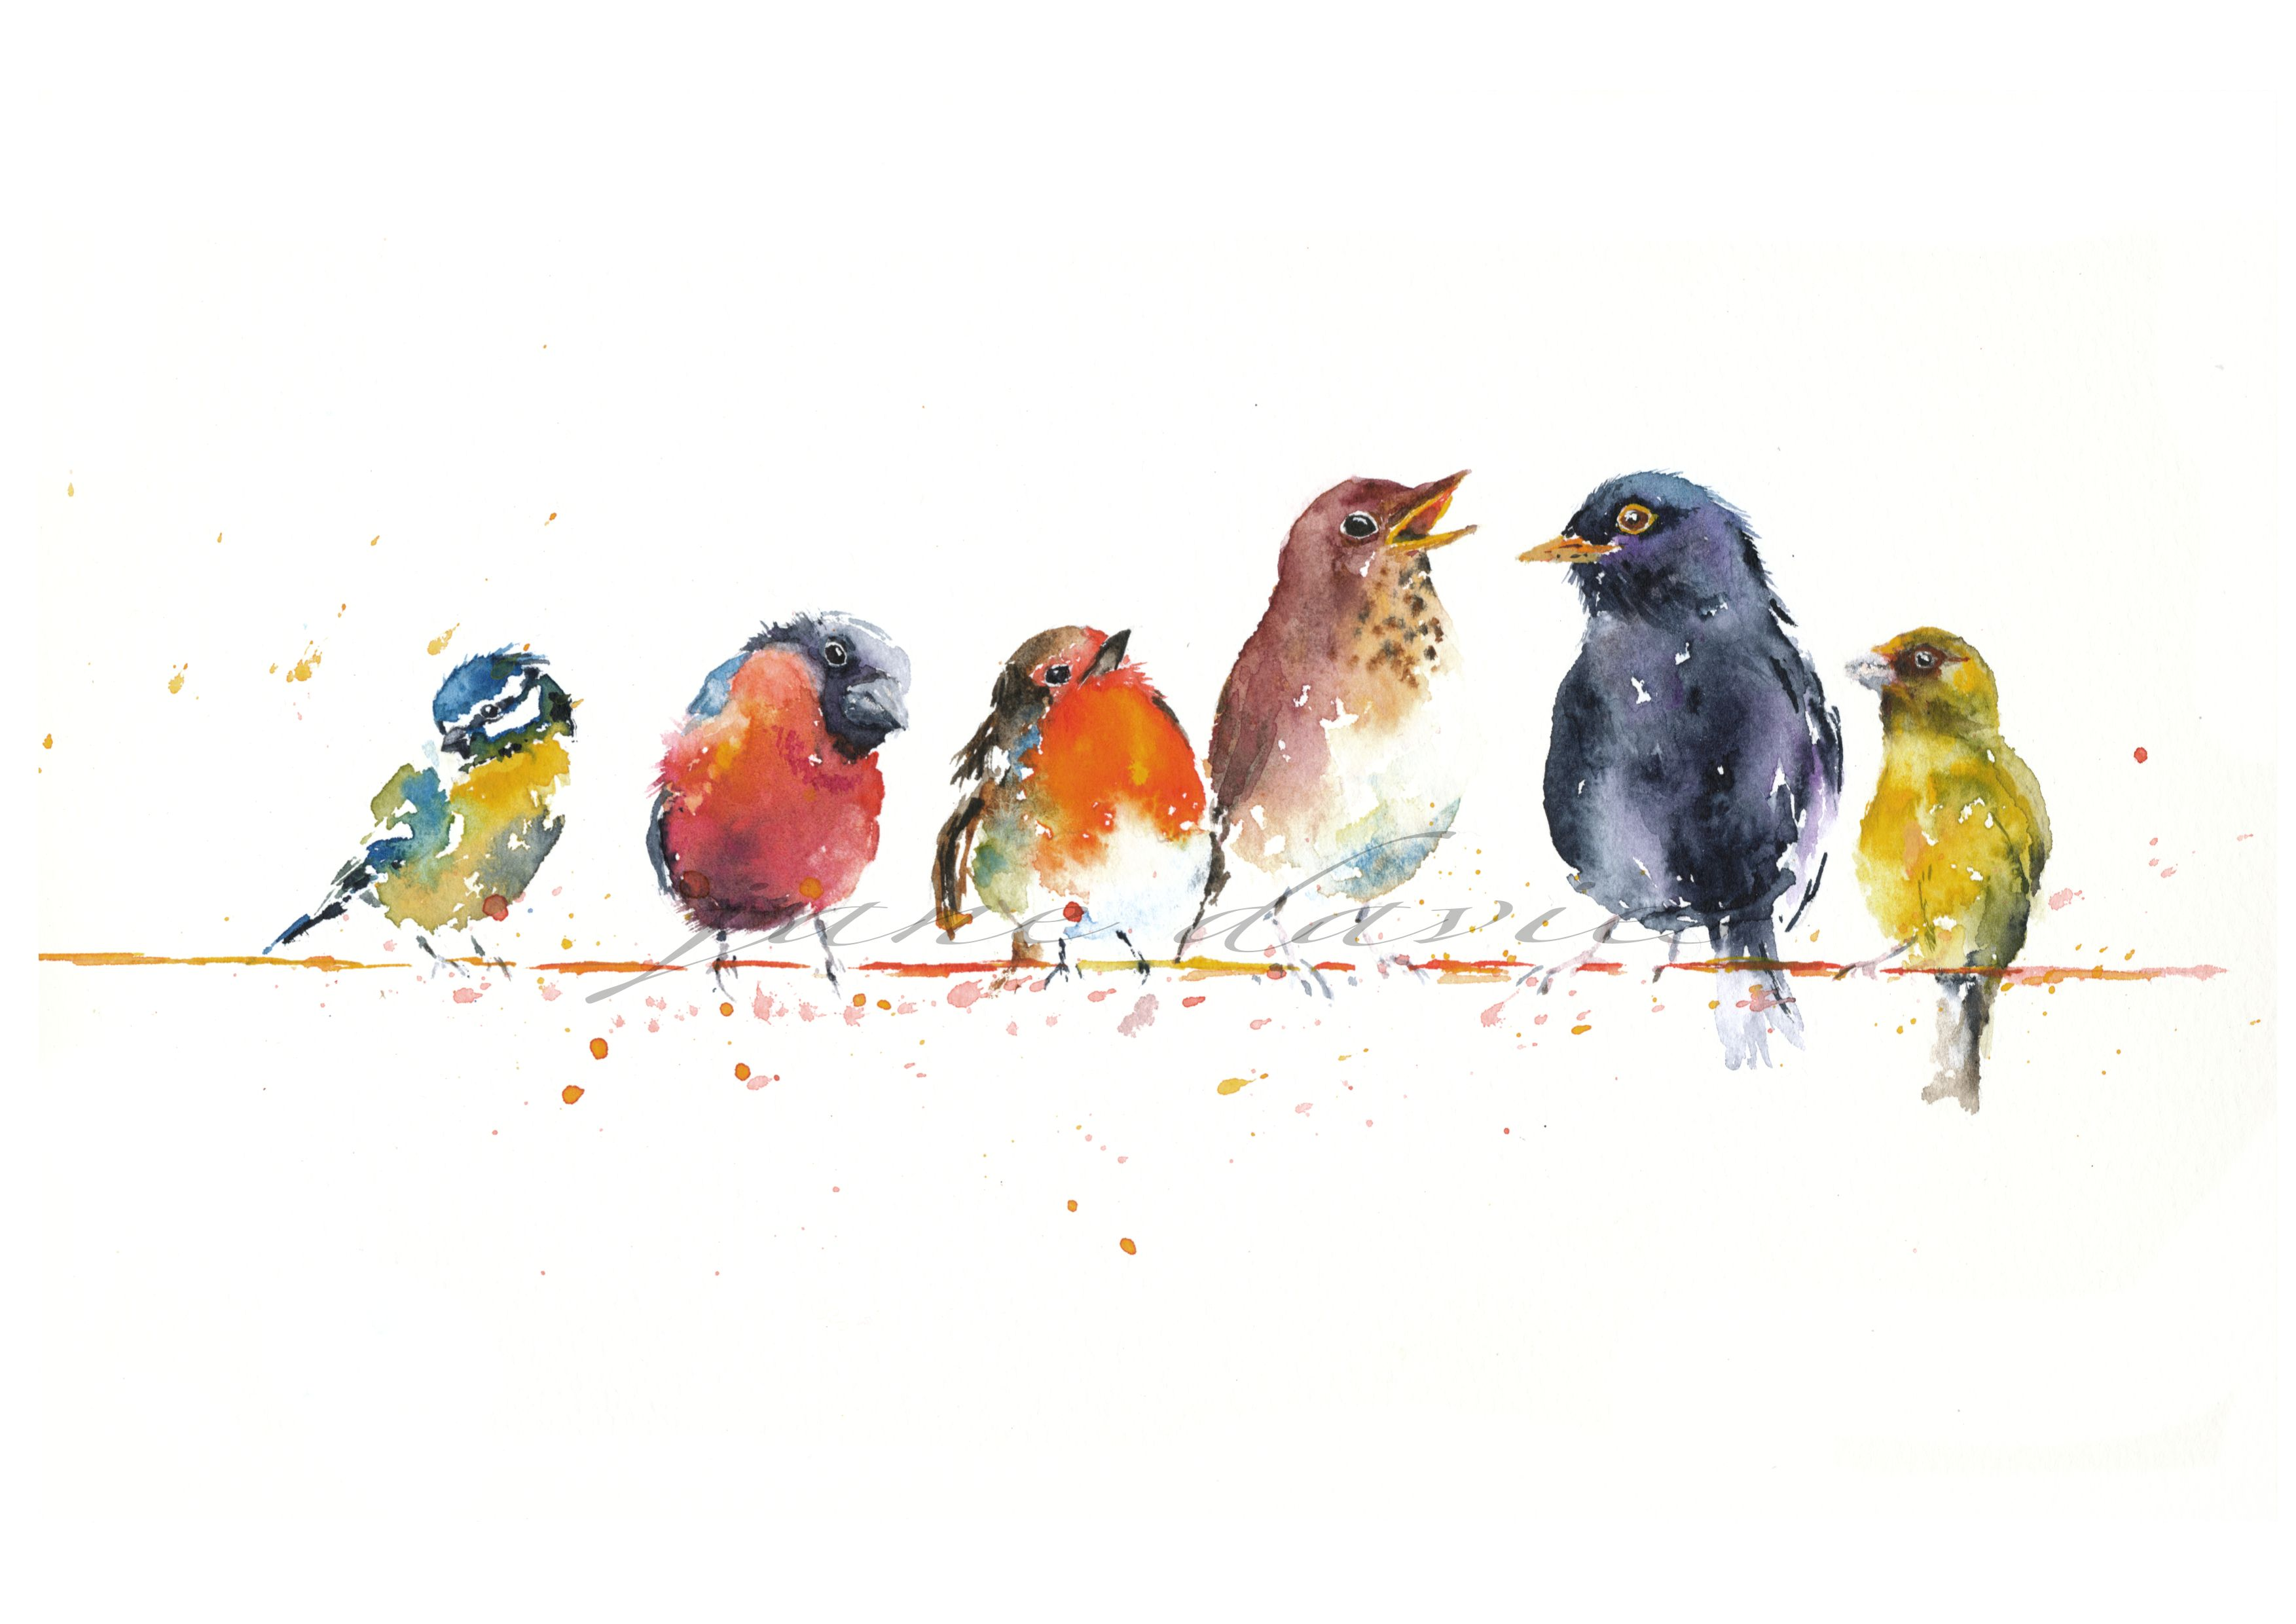 Small birds on a wire (Valentine tweets) painted by artist Jane Davies. Available as an LIMITED EDITION PRINT. #smallbirds